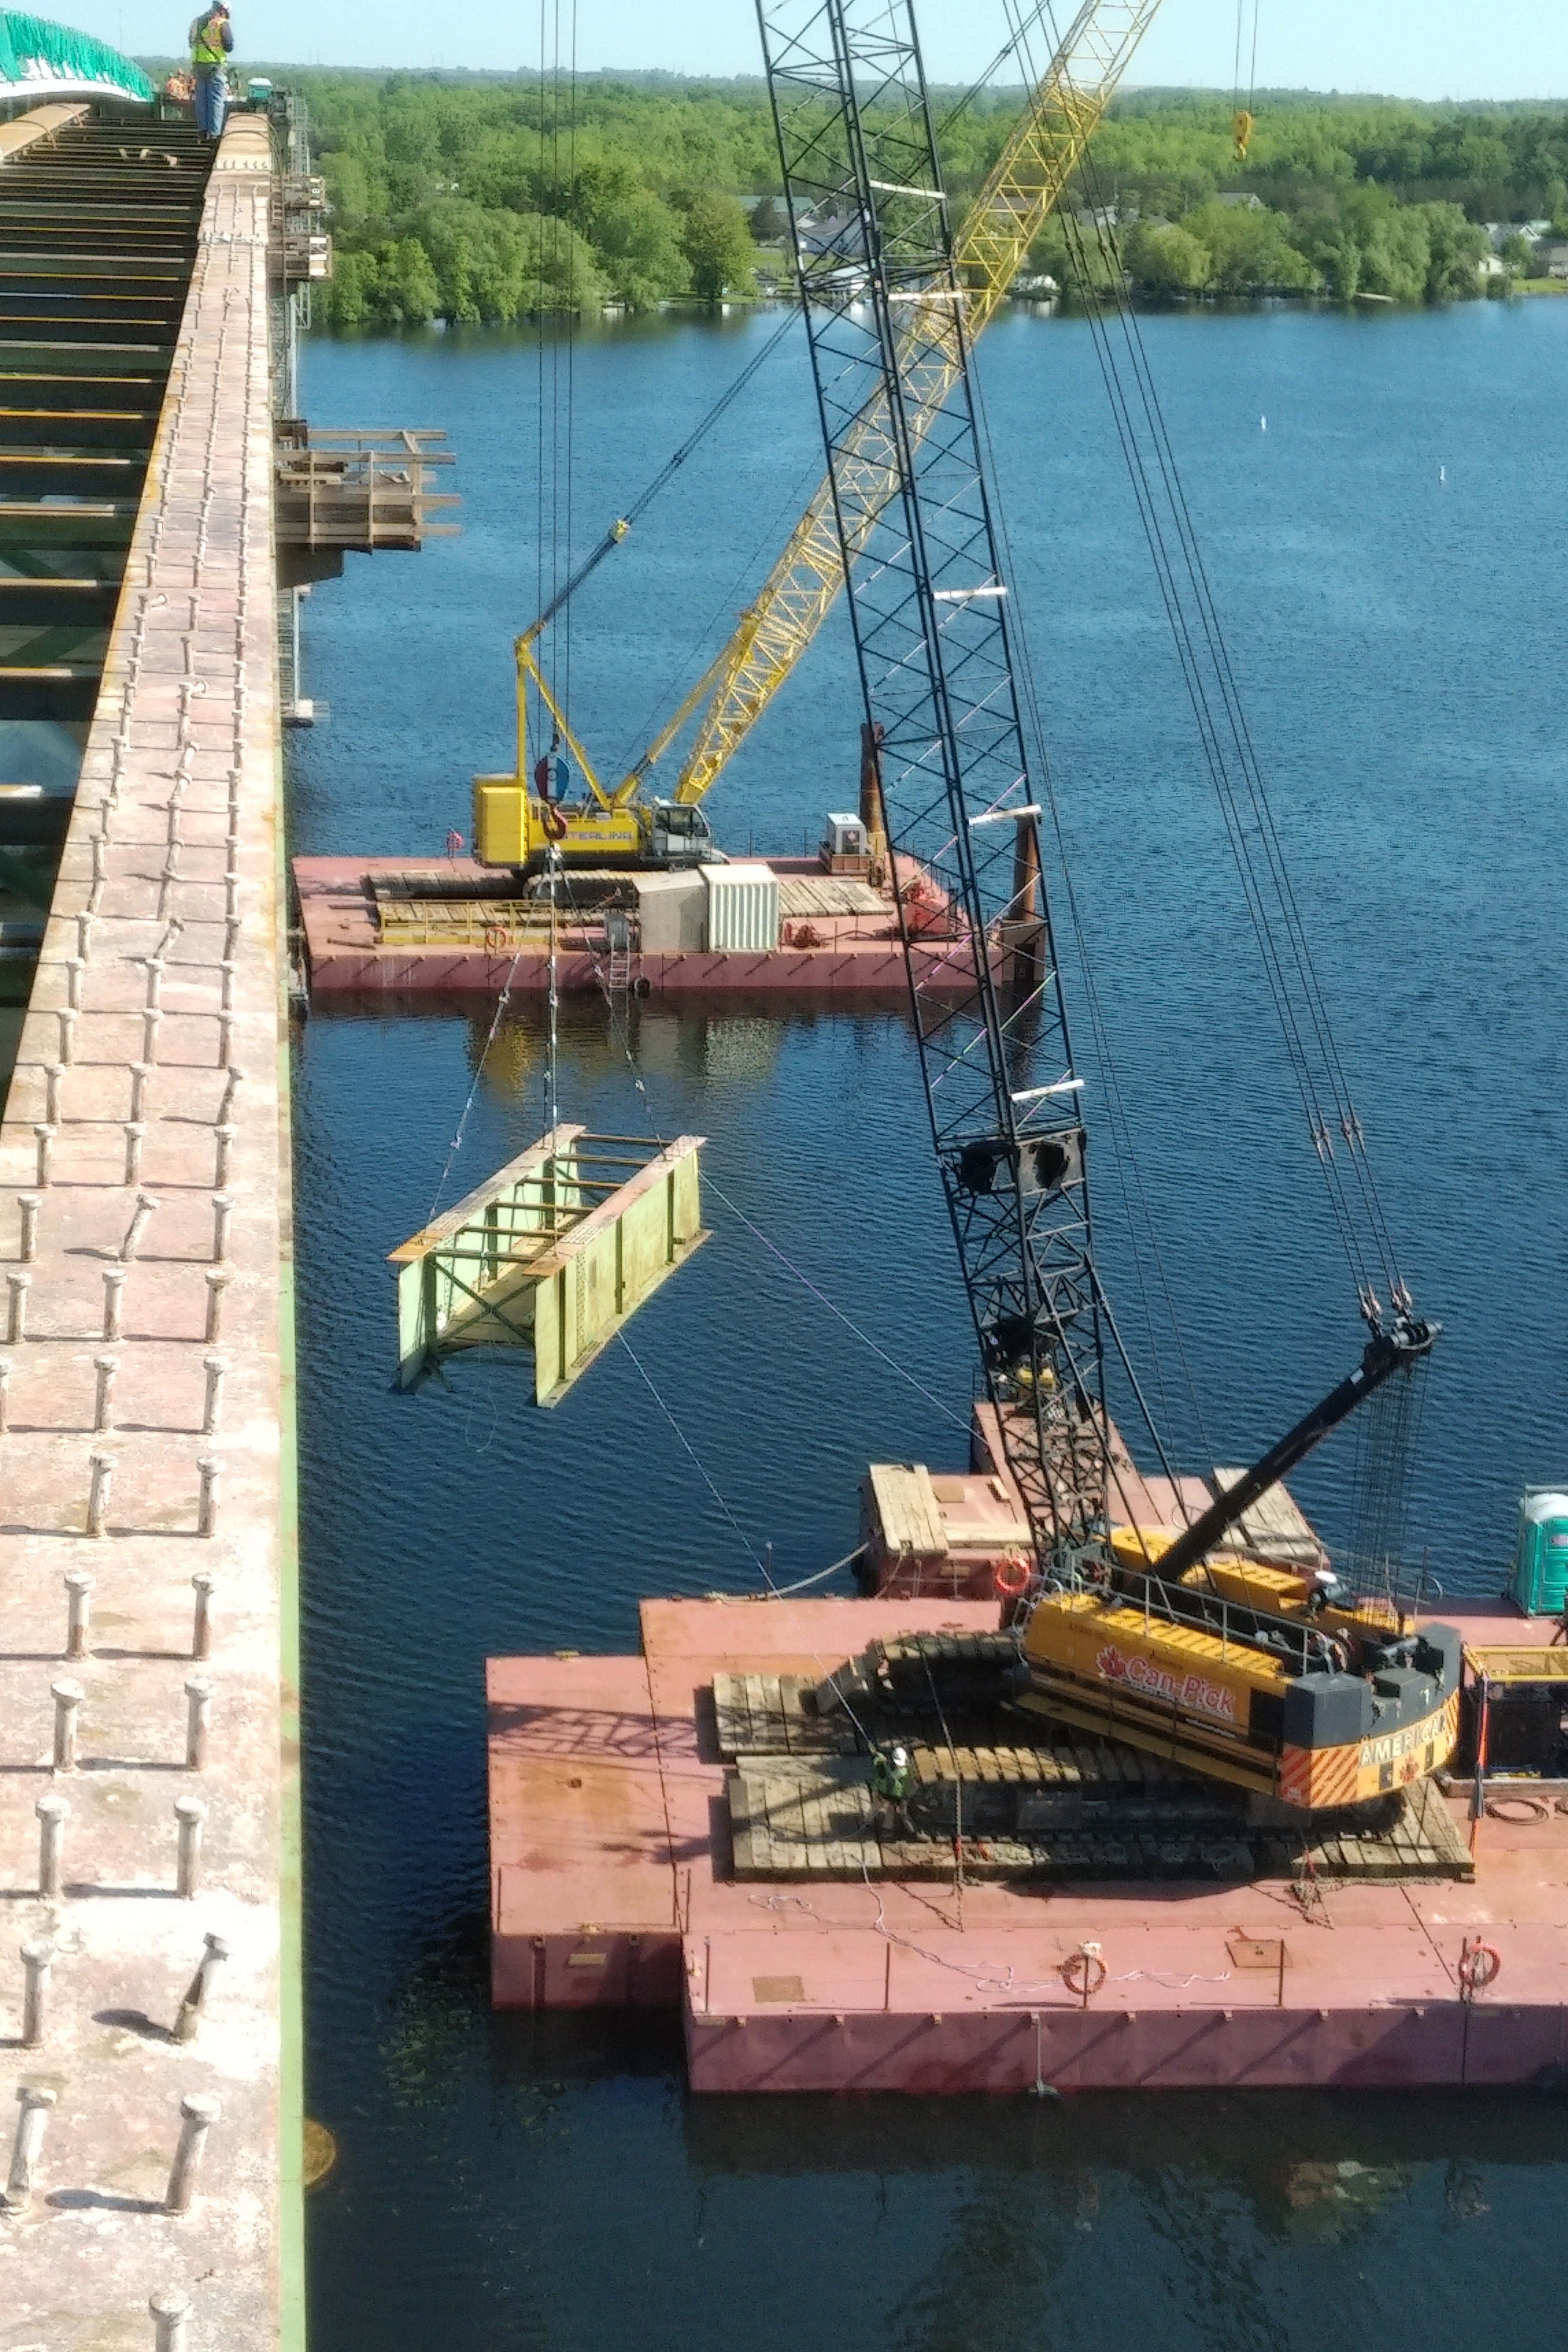 Girder being lowered to the barge